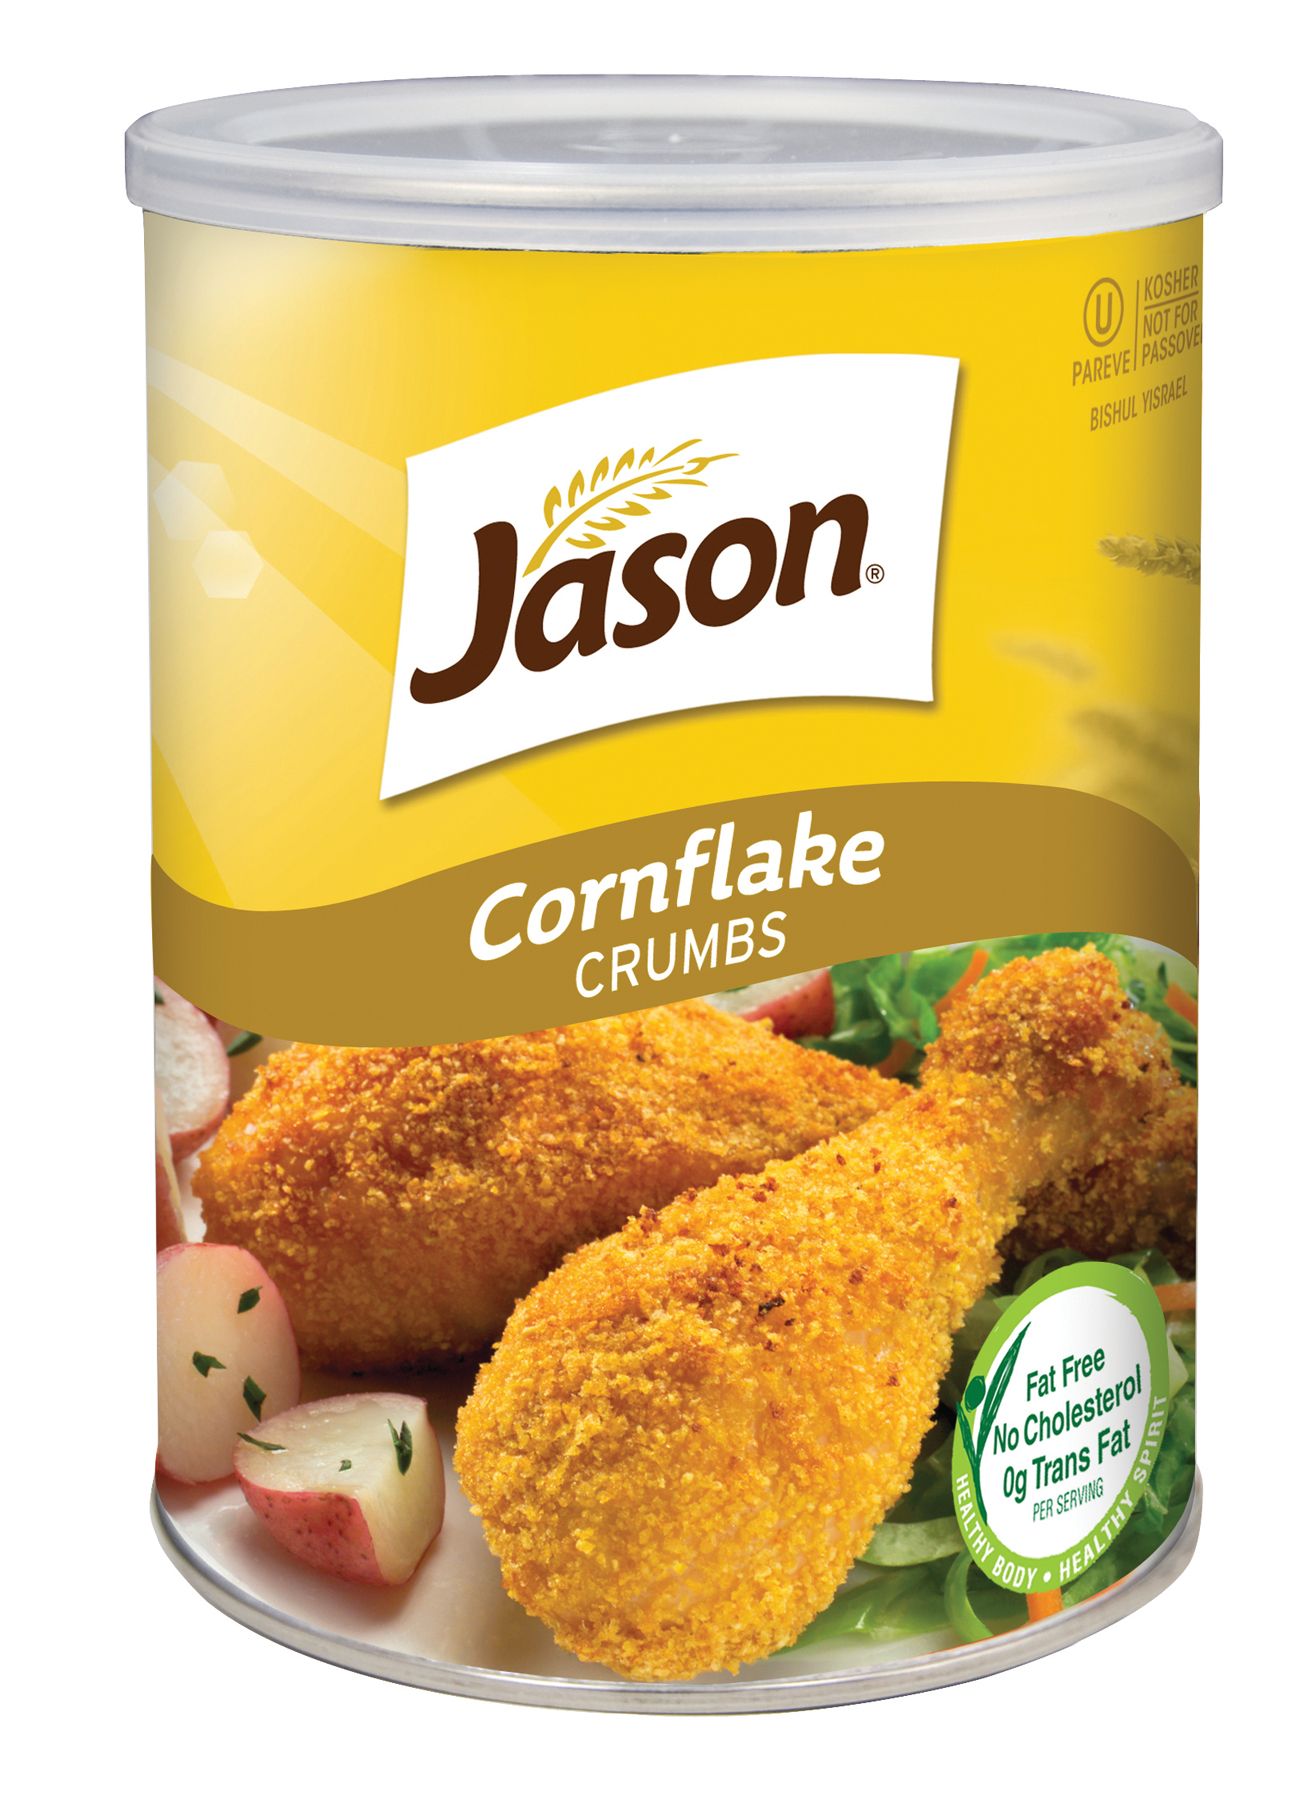 Jason Plain Corn Flake Crumbs